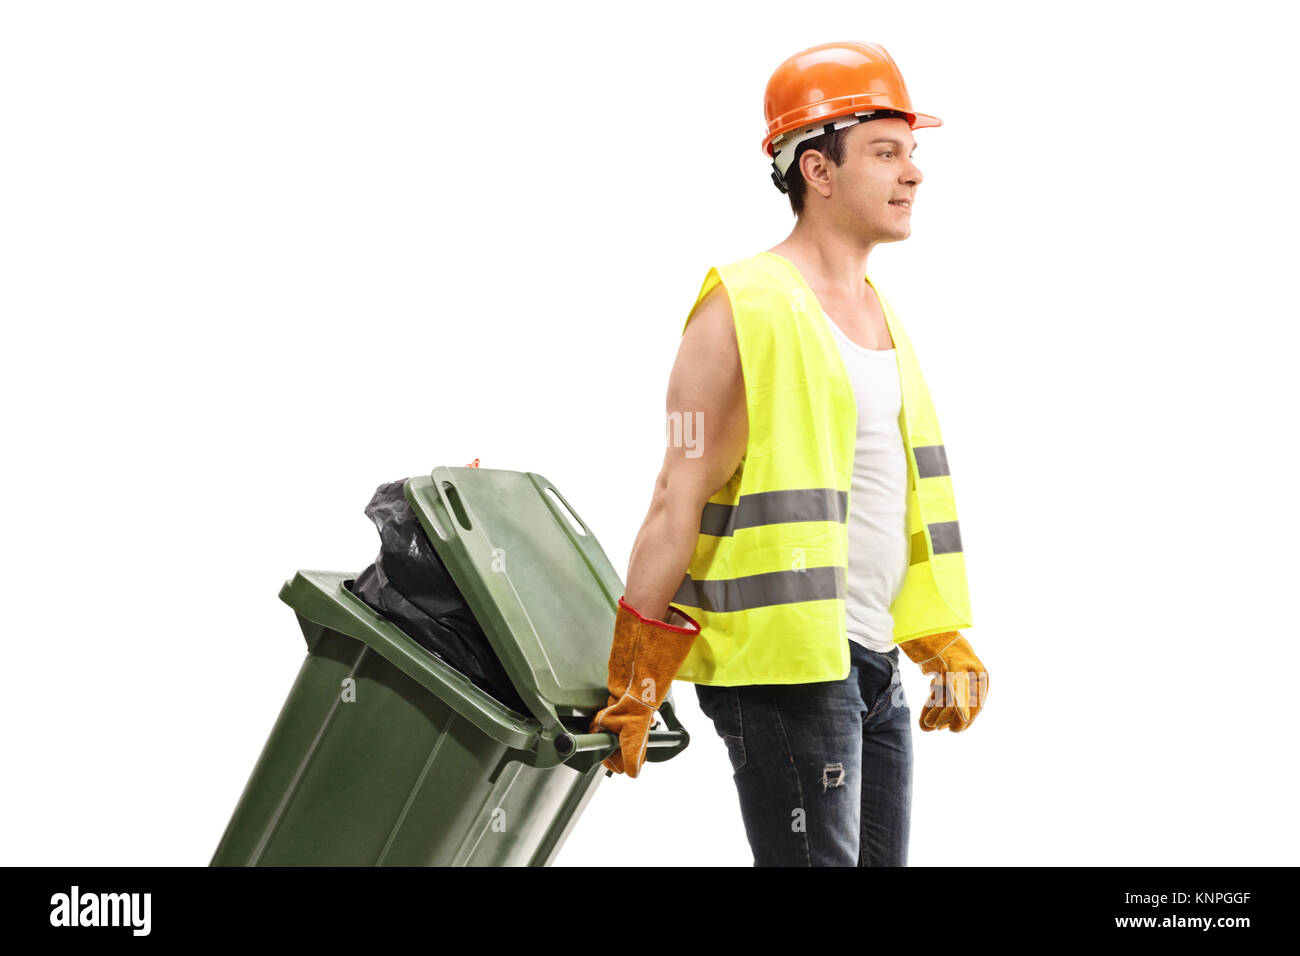 Waste collector with a trash can isolated on white background - Stock Image